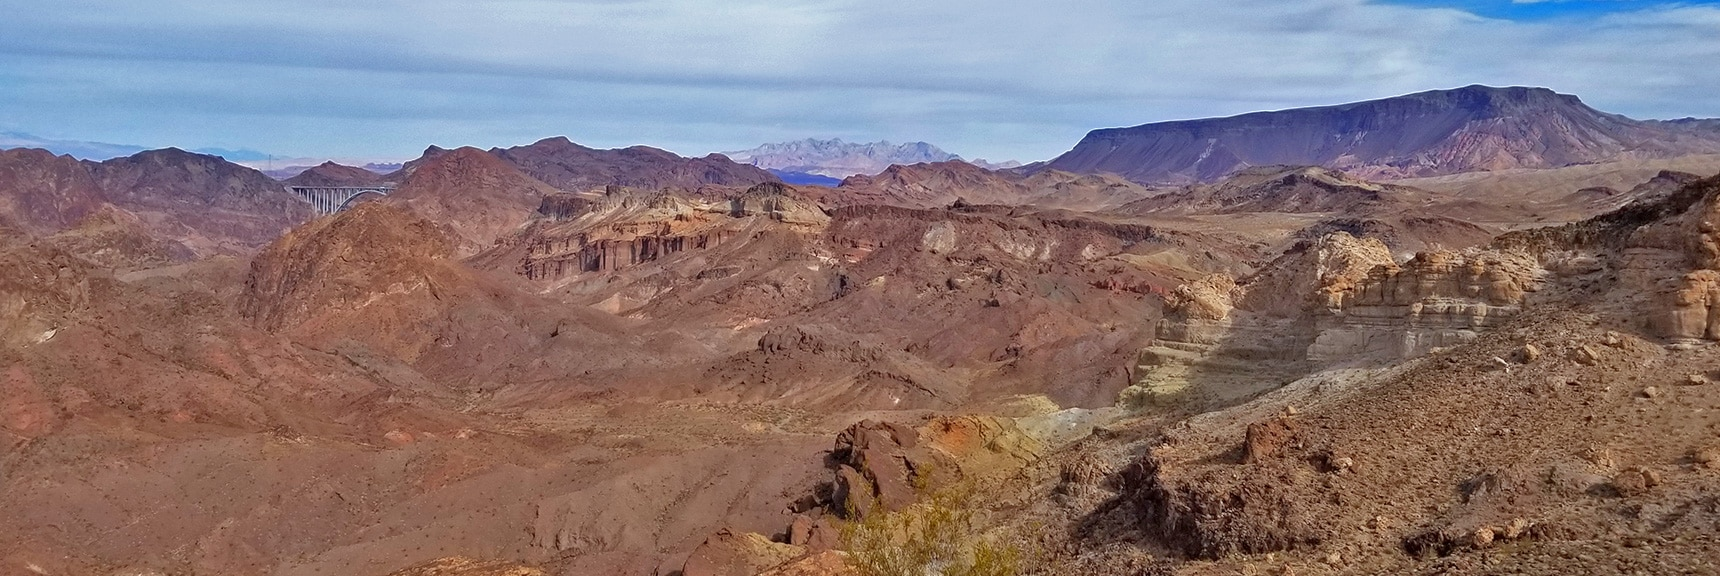 I-11/Hwy93 Bridge, Muddy Mts., Lake Mead and Fortification Hill | Arizona Hot Spring | Liberty Bell Arch | Lake Mead National Recreation Area, Arizona